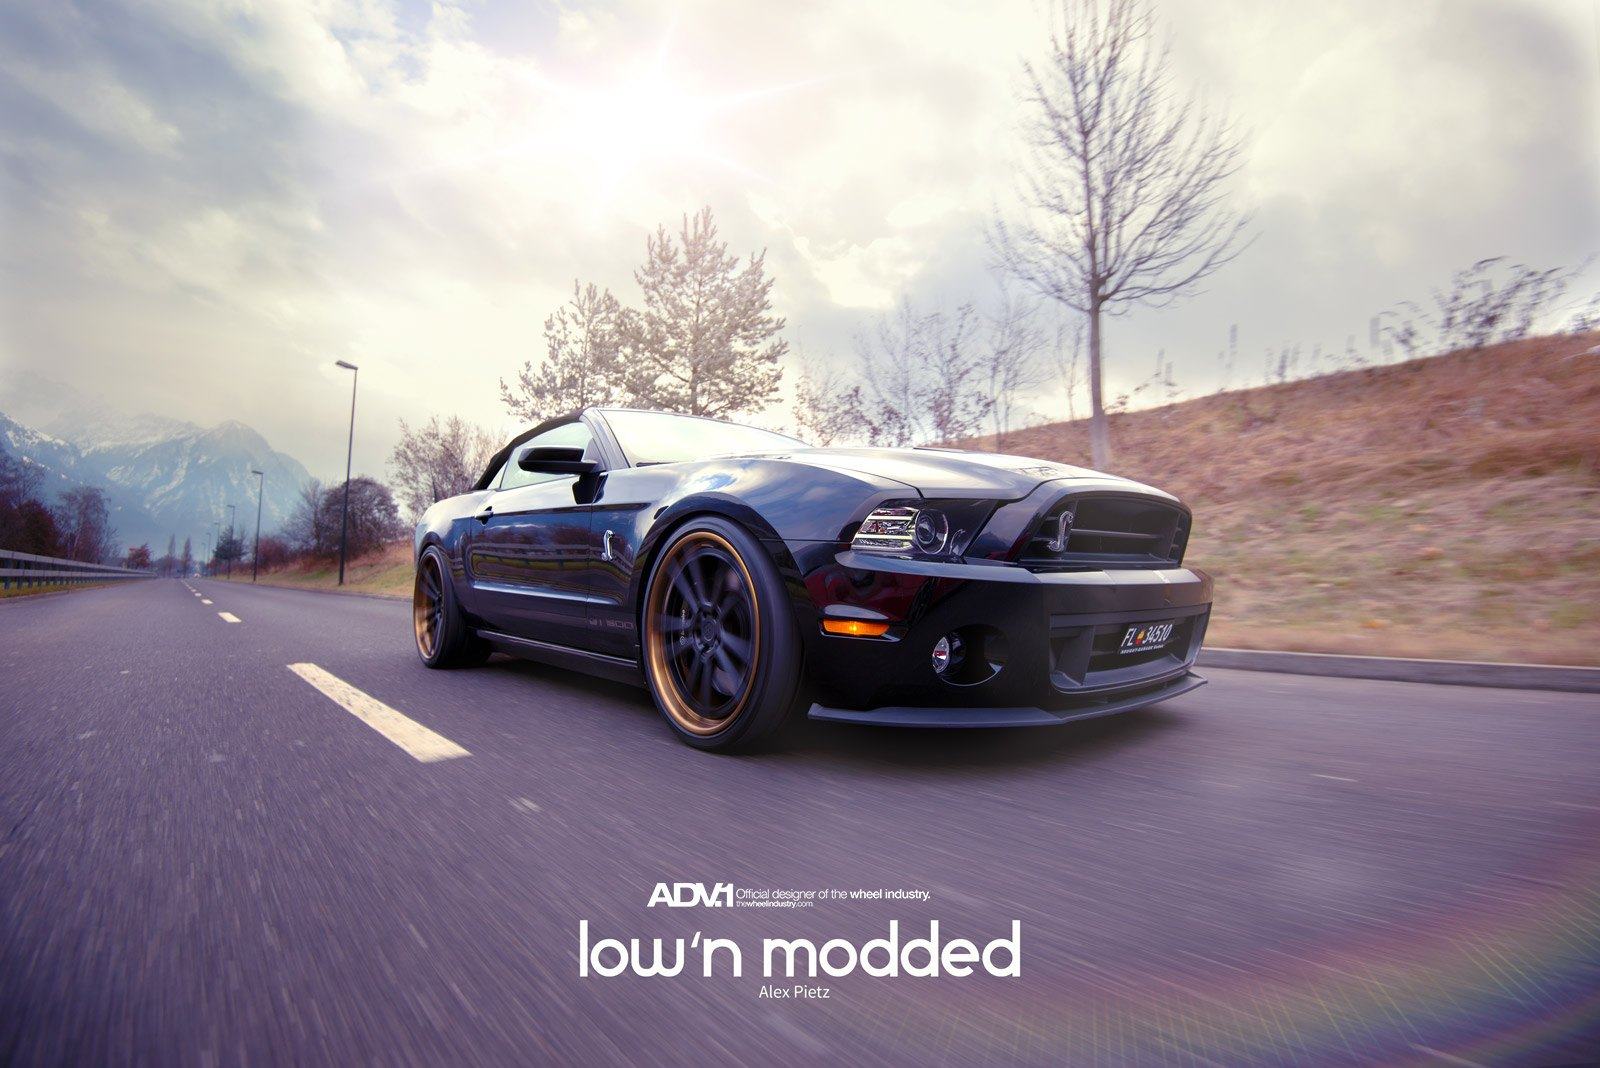 Aftermarket Front Lip on Black Ford Mustang - Photo by ADV.1